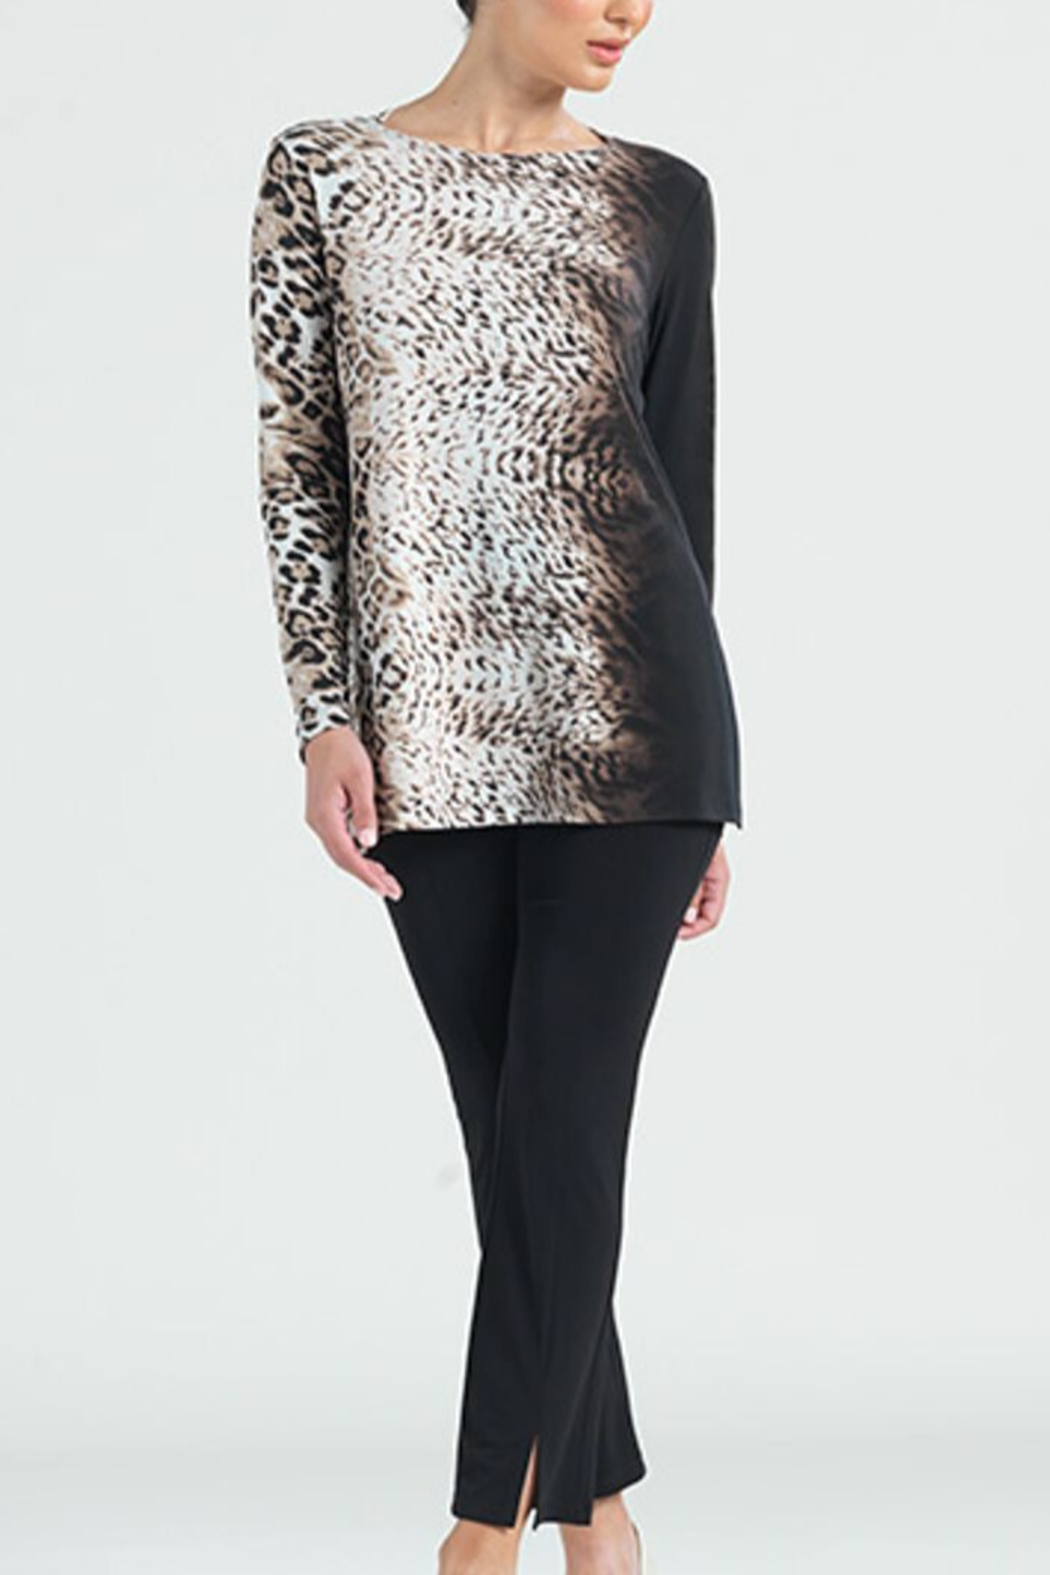 Clara Sunwoo Cheetah Ombre Cut-out Back Knit Tunic - Front Cropped Image